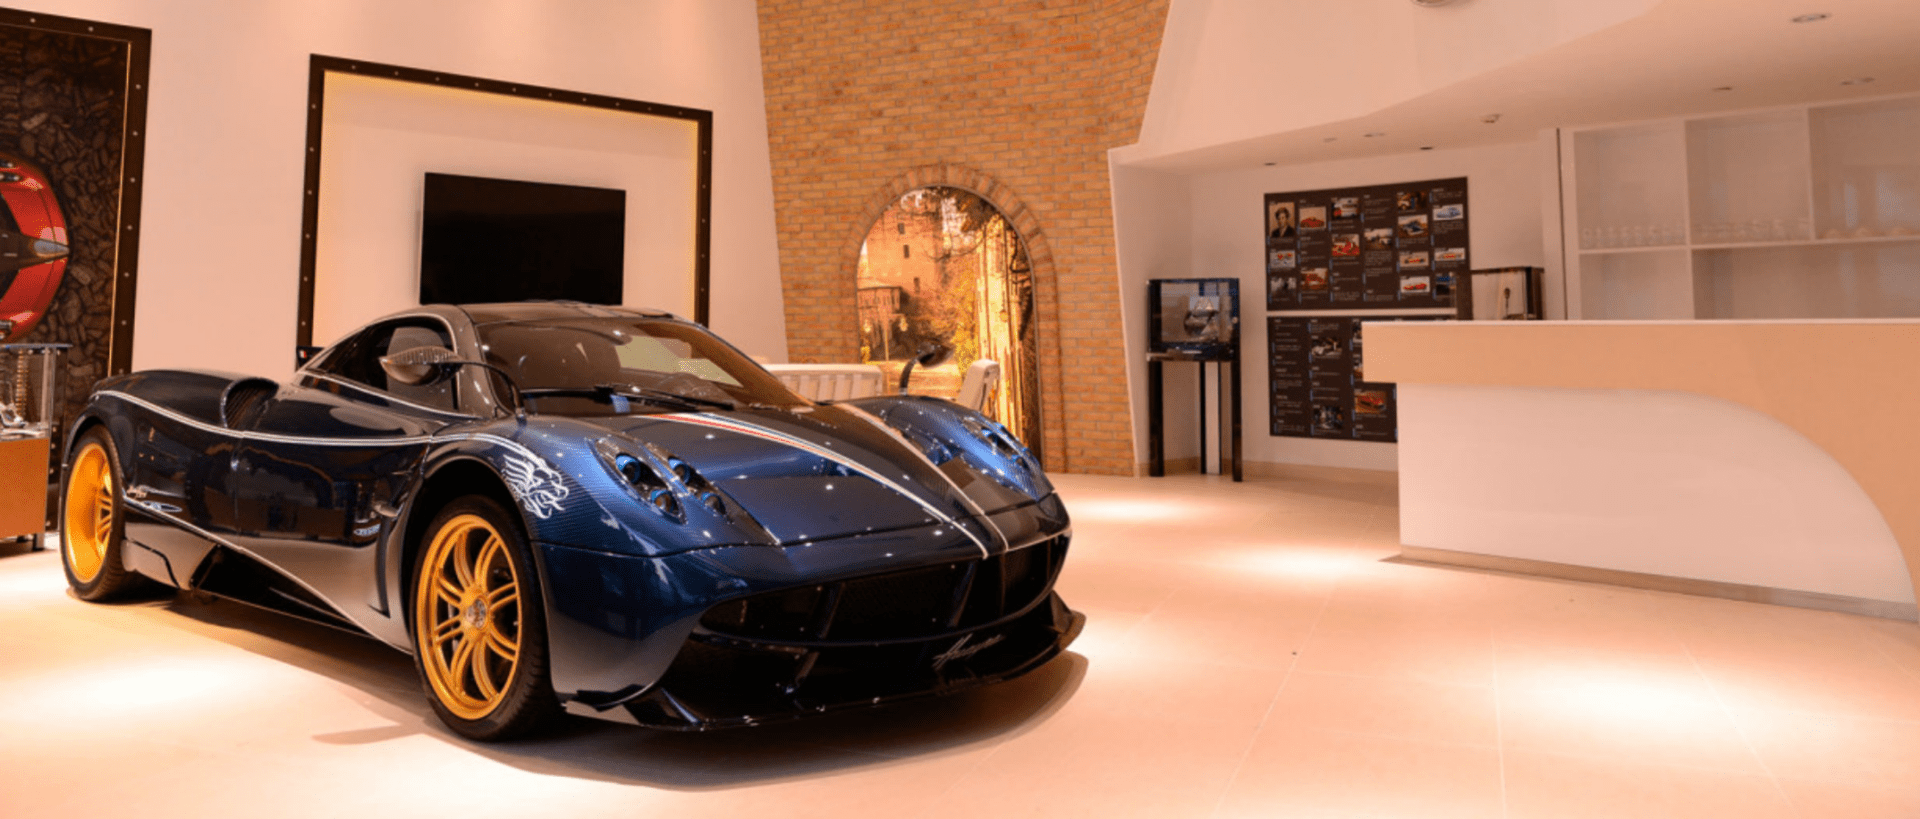 Pagani Showroom in Shanghai, China